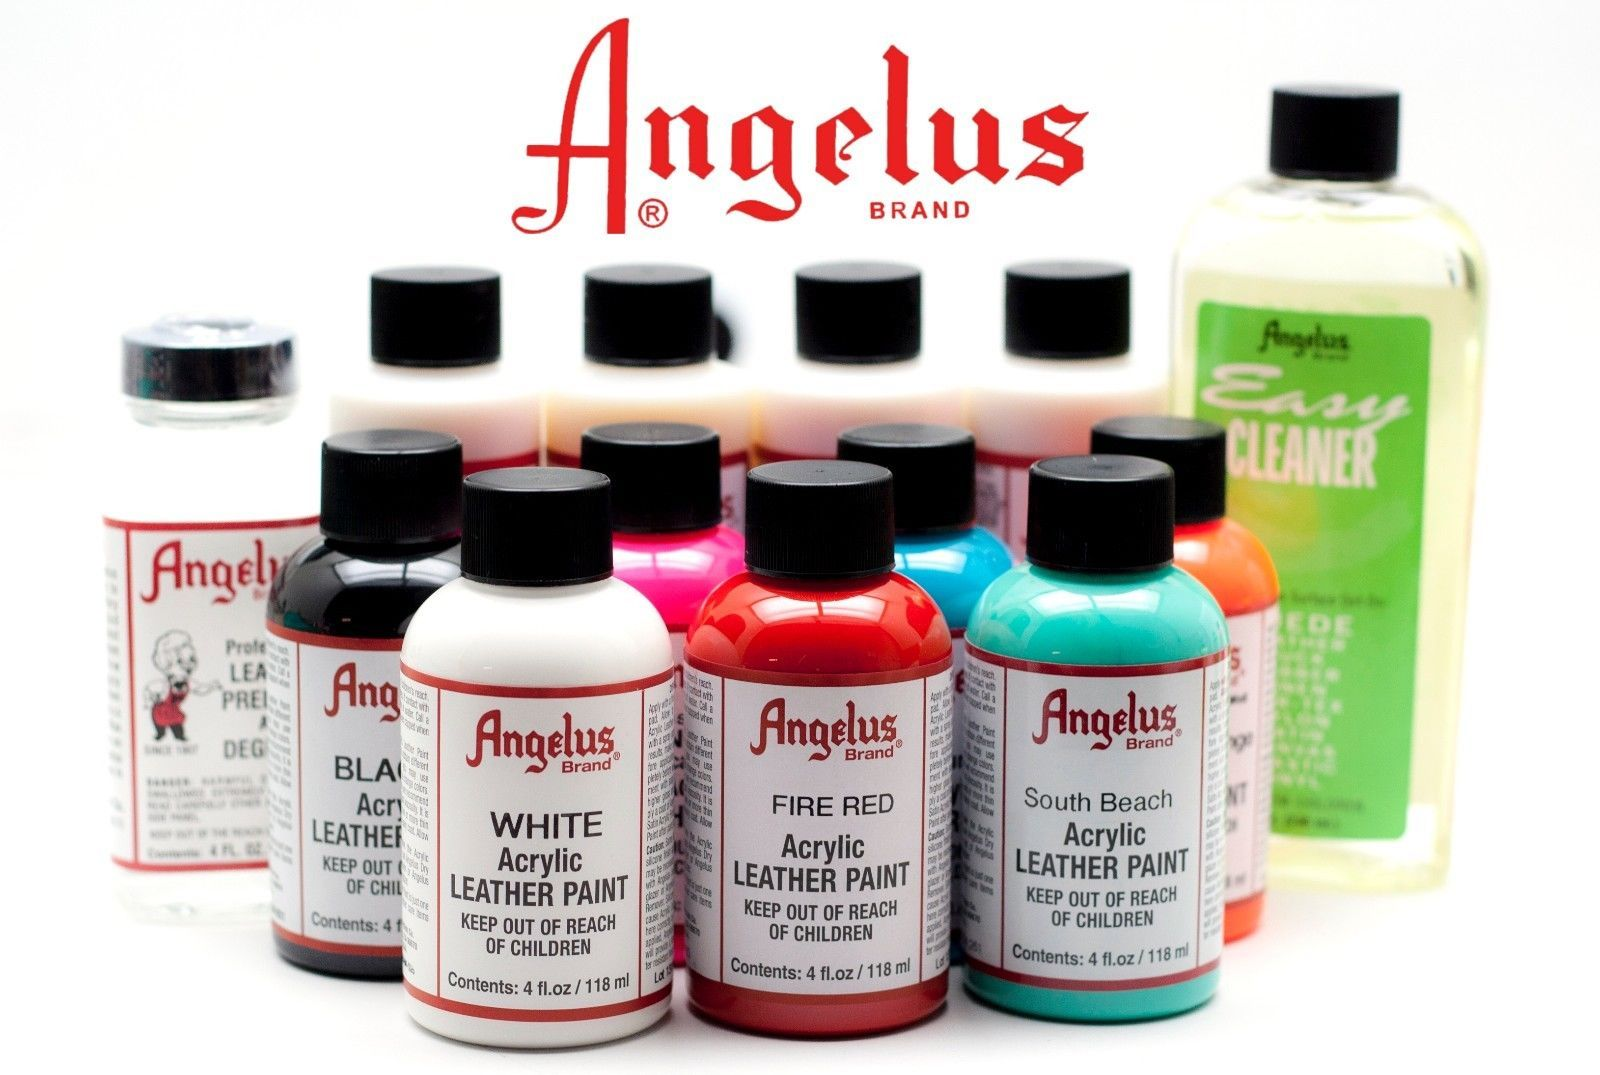 Angelus Brand Acrylic Leather Paint Waterproof 1oz